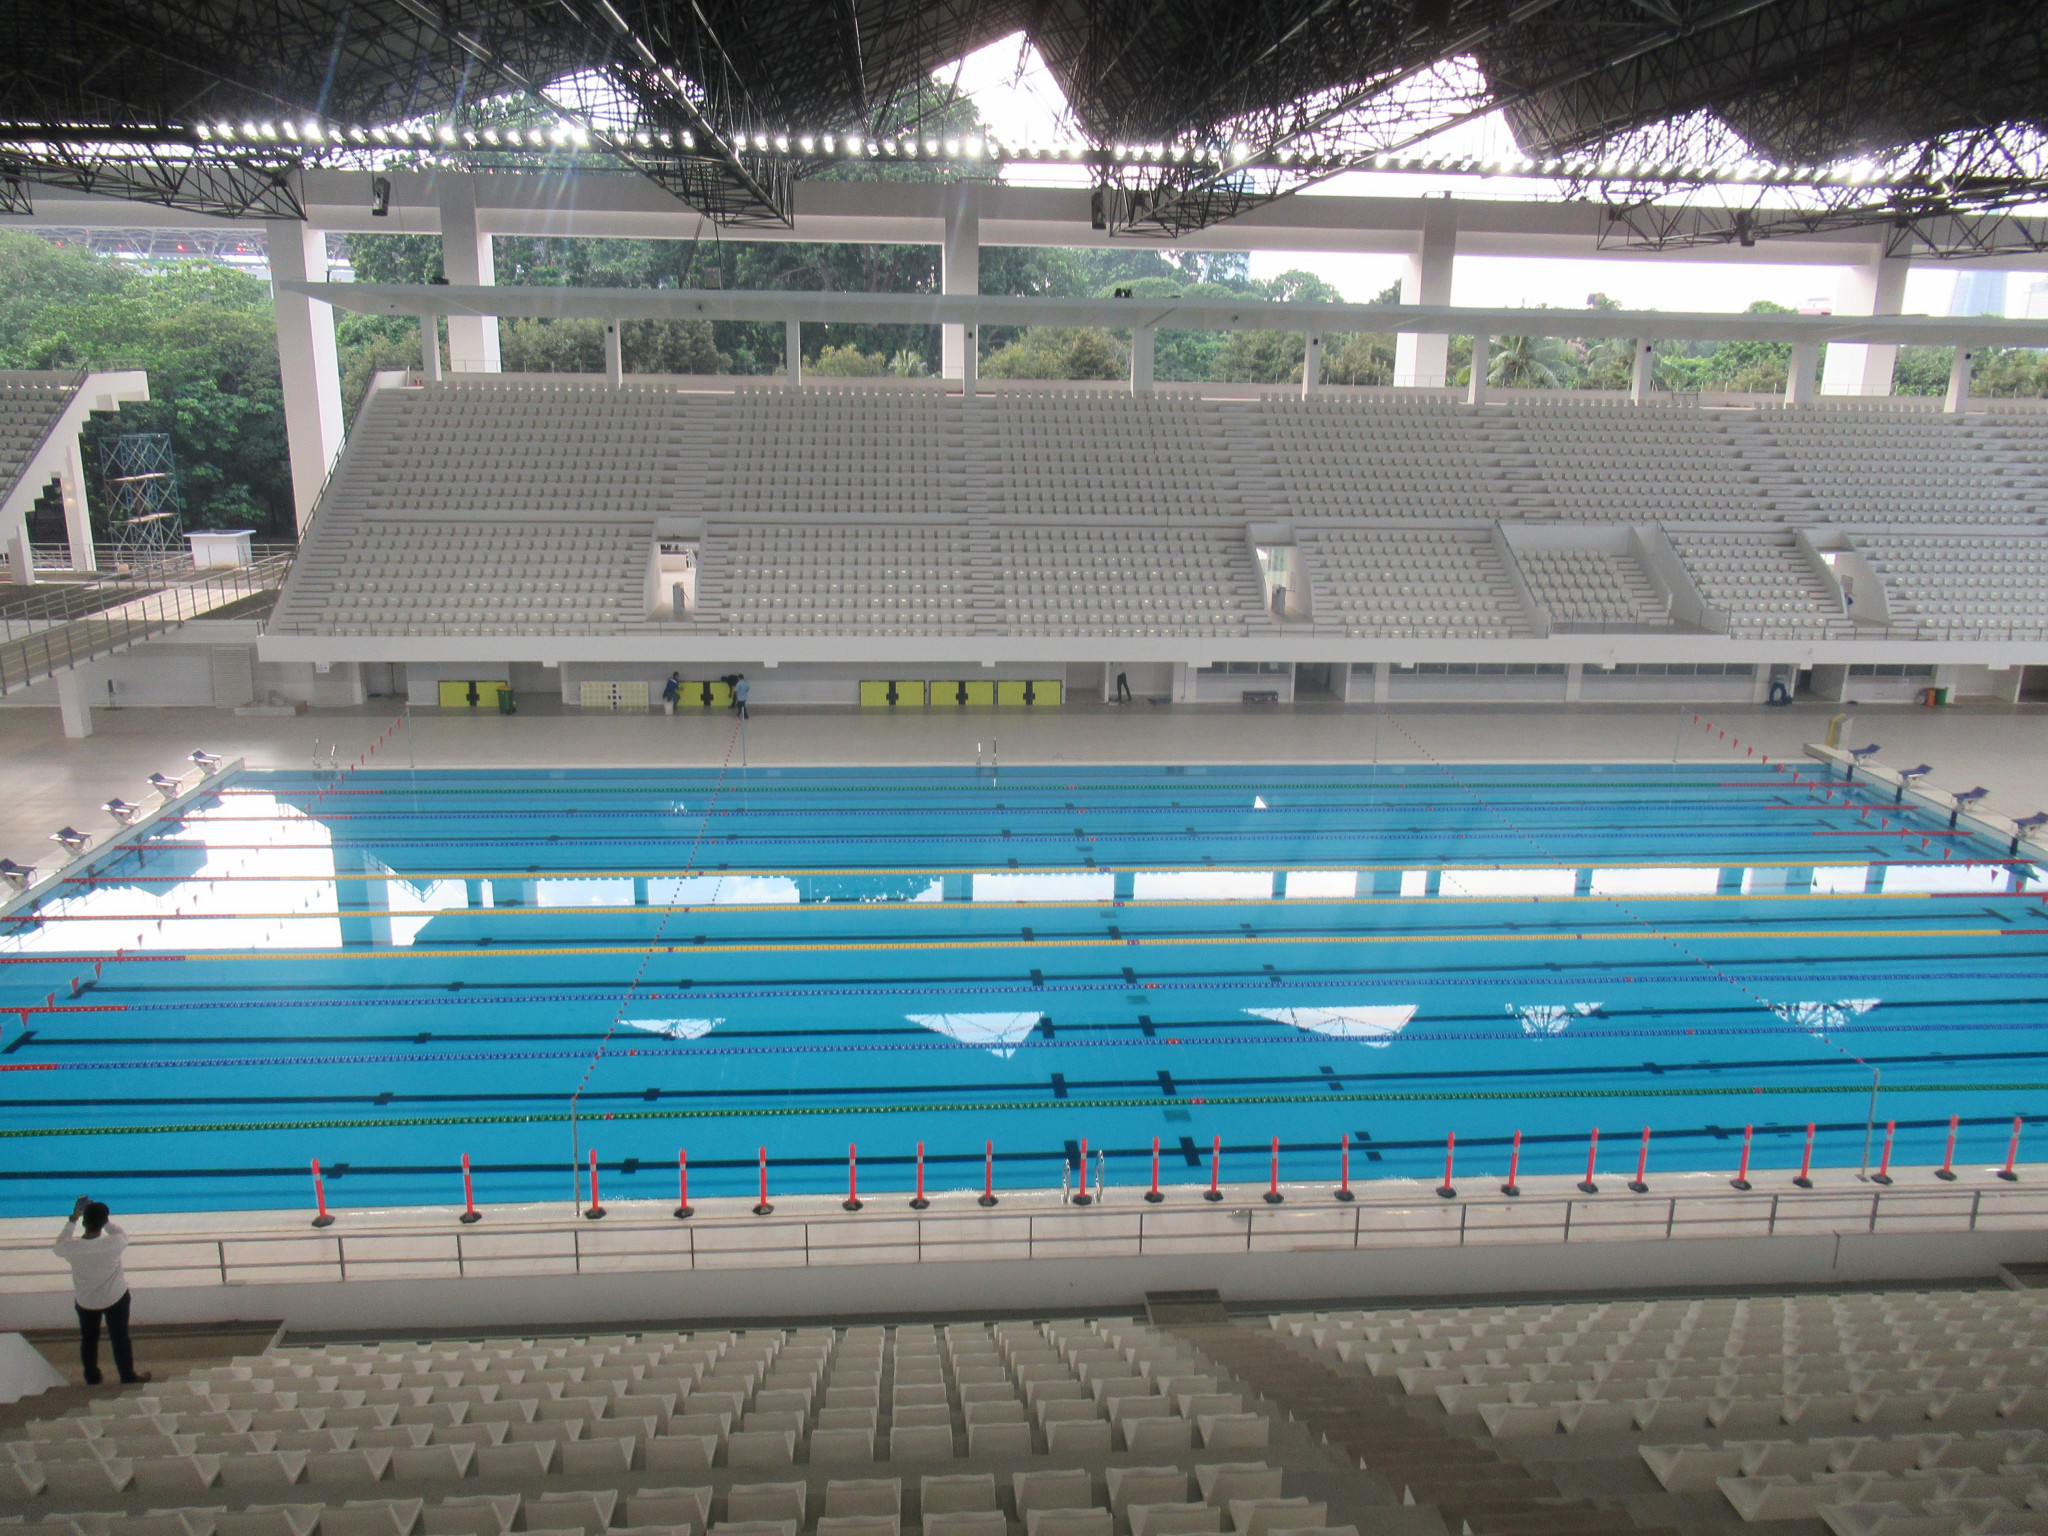 The refurbished aquatic centre was another key venue assessed during the visit ©OCA